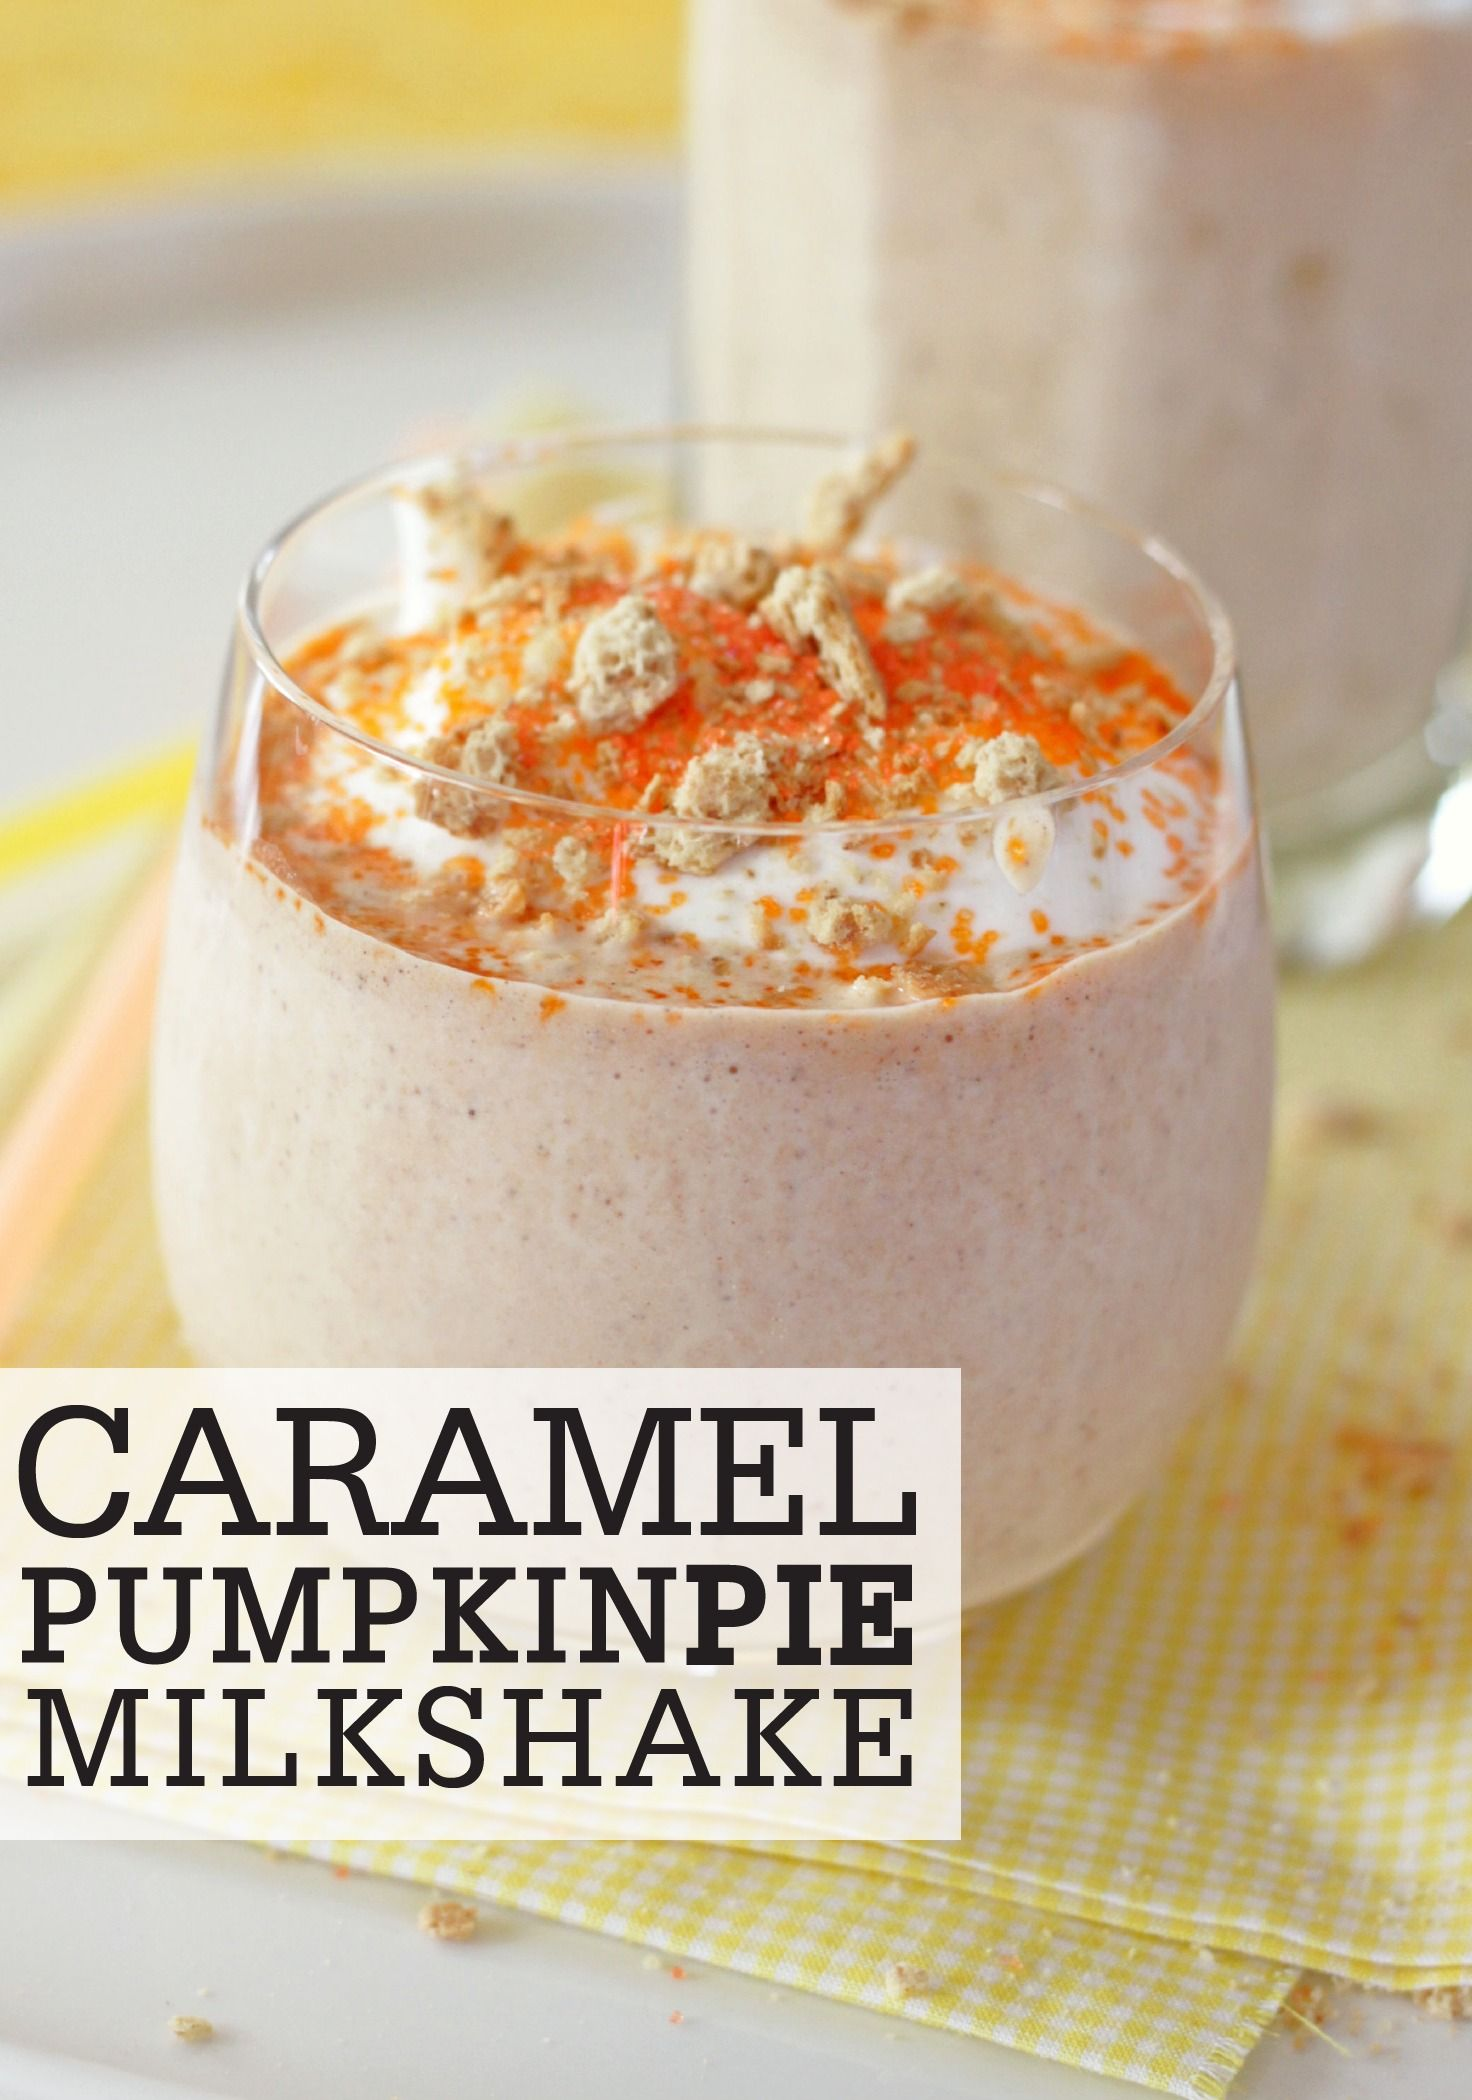 This Caramel Pumpkin Pie Milkshake recipe is a delightfully creamy, seasonal snack to give your kids as a special after-school snack!